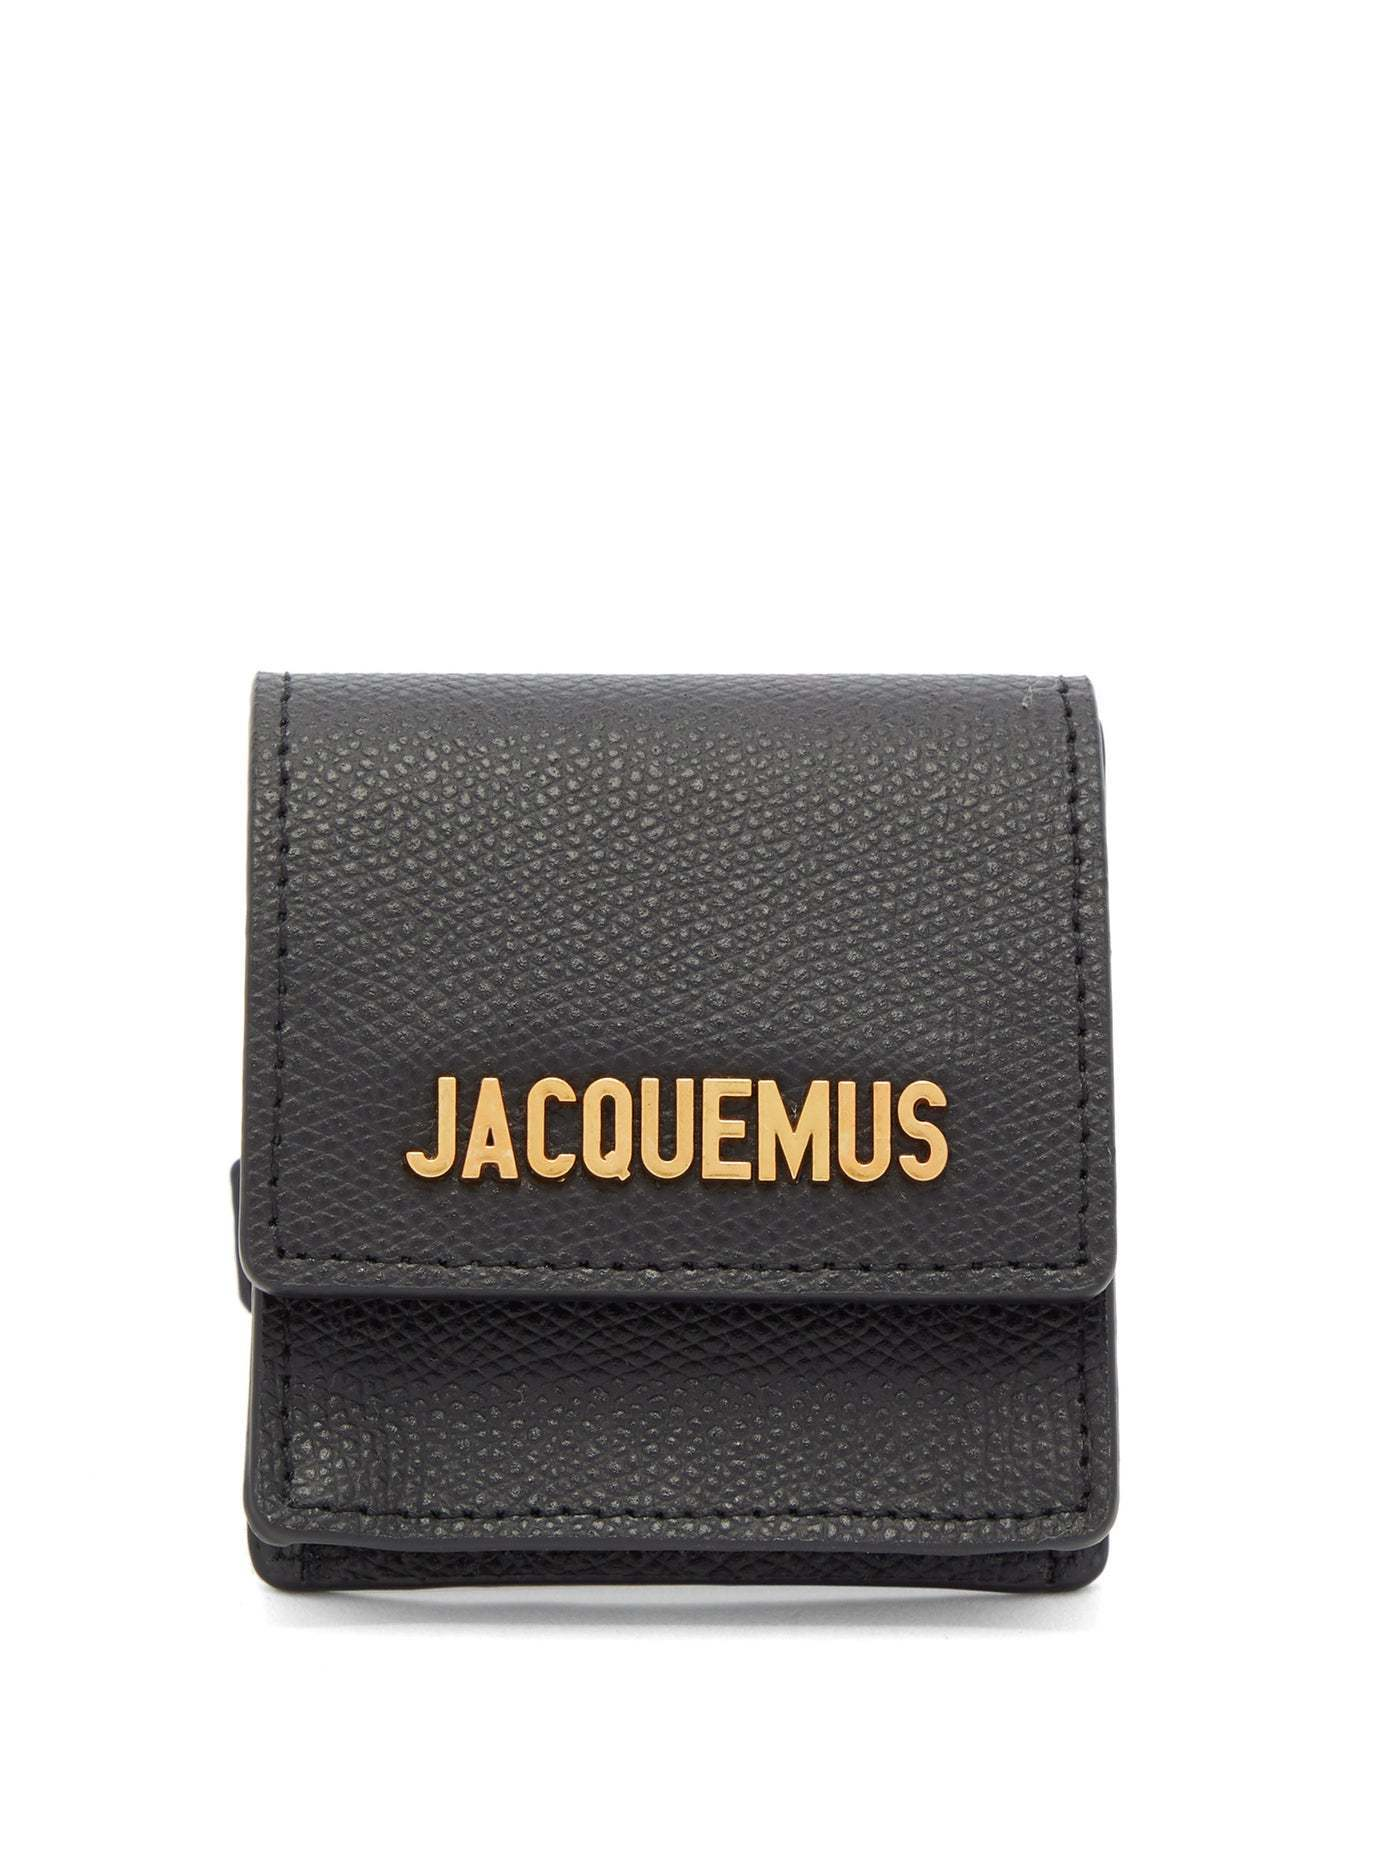 shop jacquemus jewelry